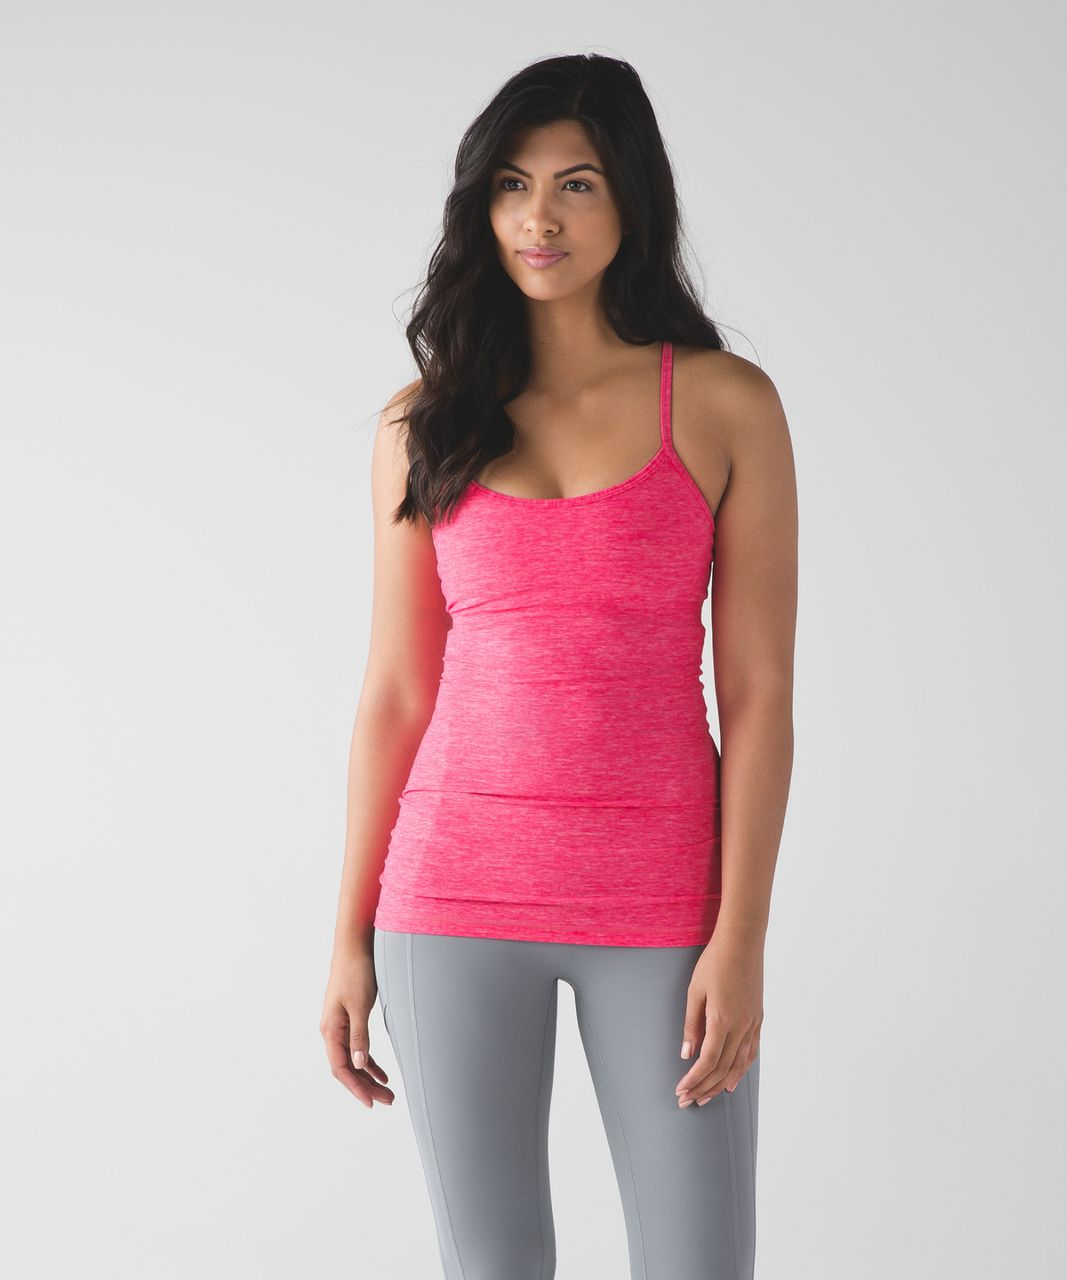 Lululemon Power Y Tank (Luon) - Heathered Neon Pink